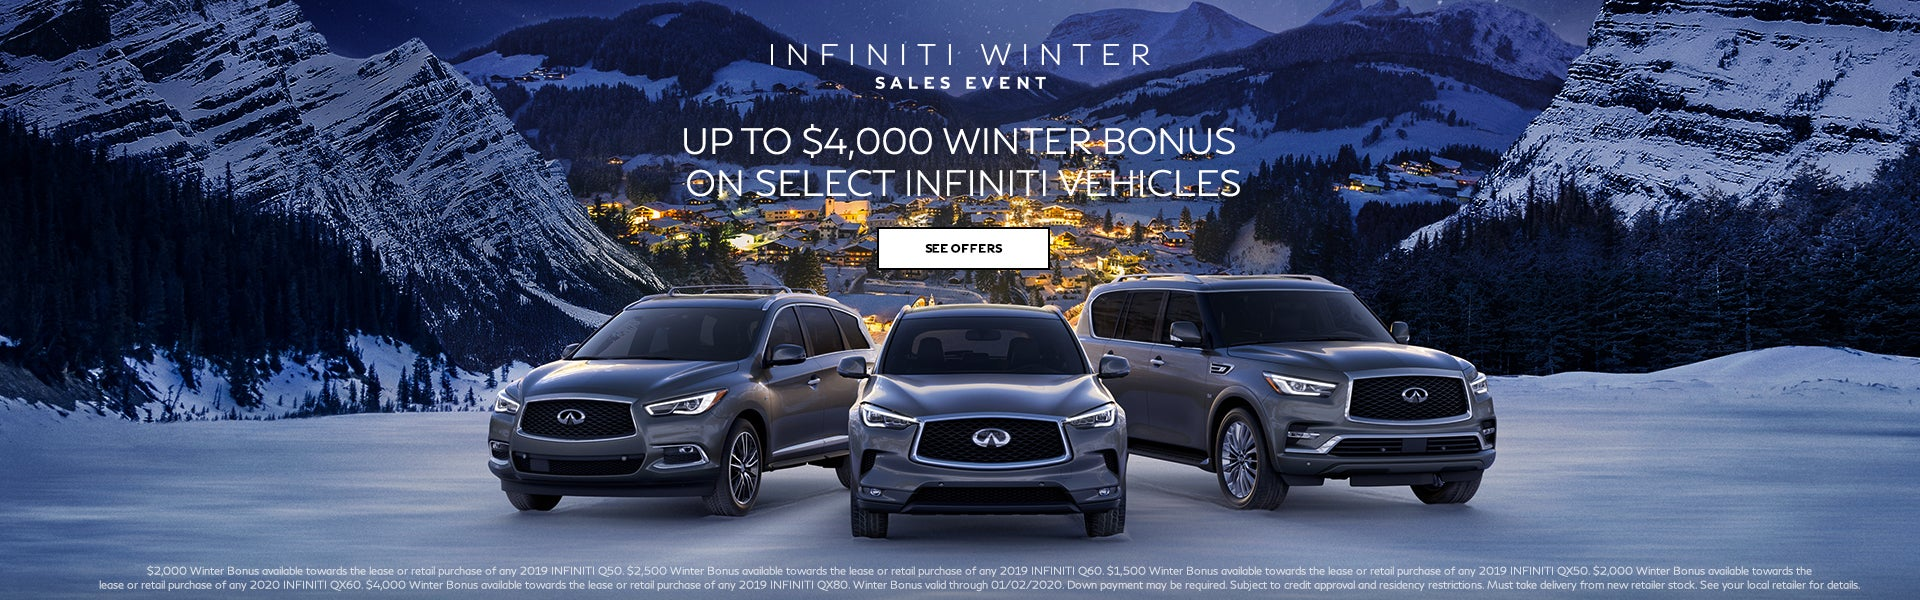 Used Car Dealerships Knoxville Tn >> Infiniti Dealer In Knoxville Tn Used Cars Knoxville